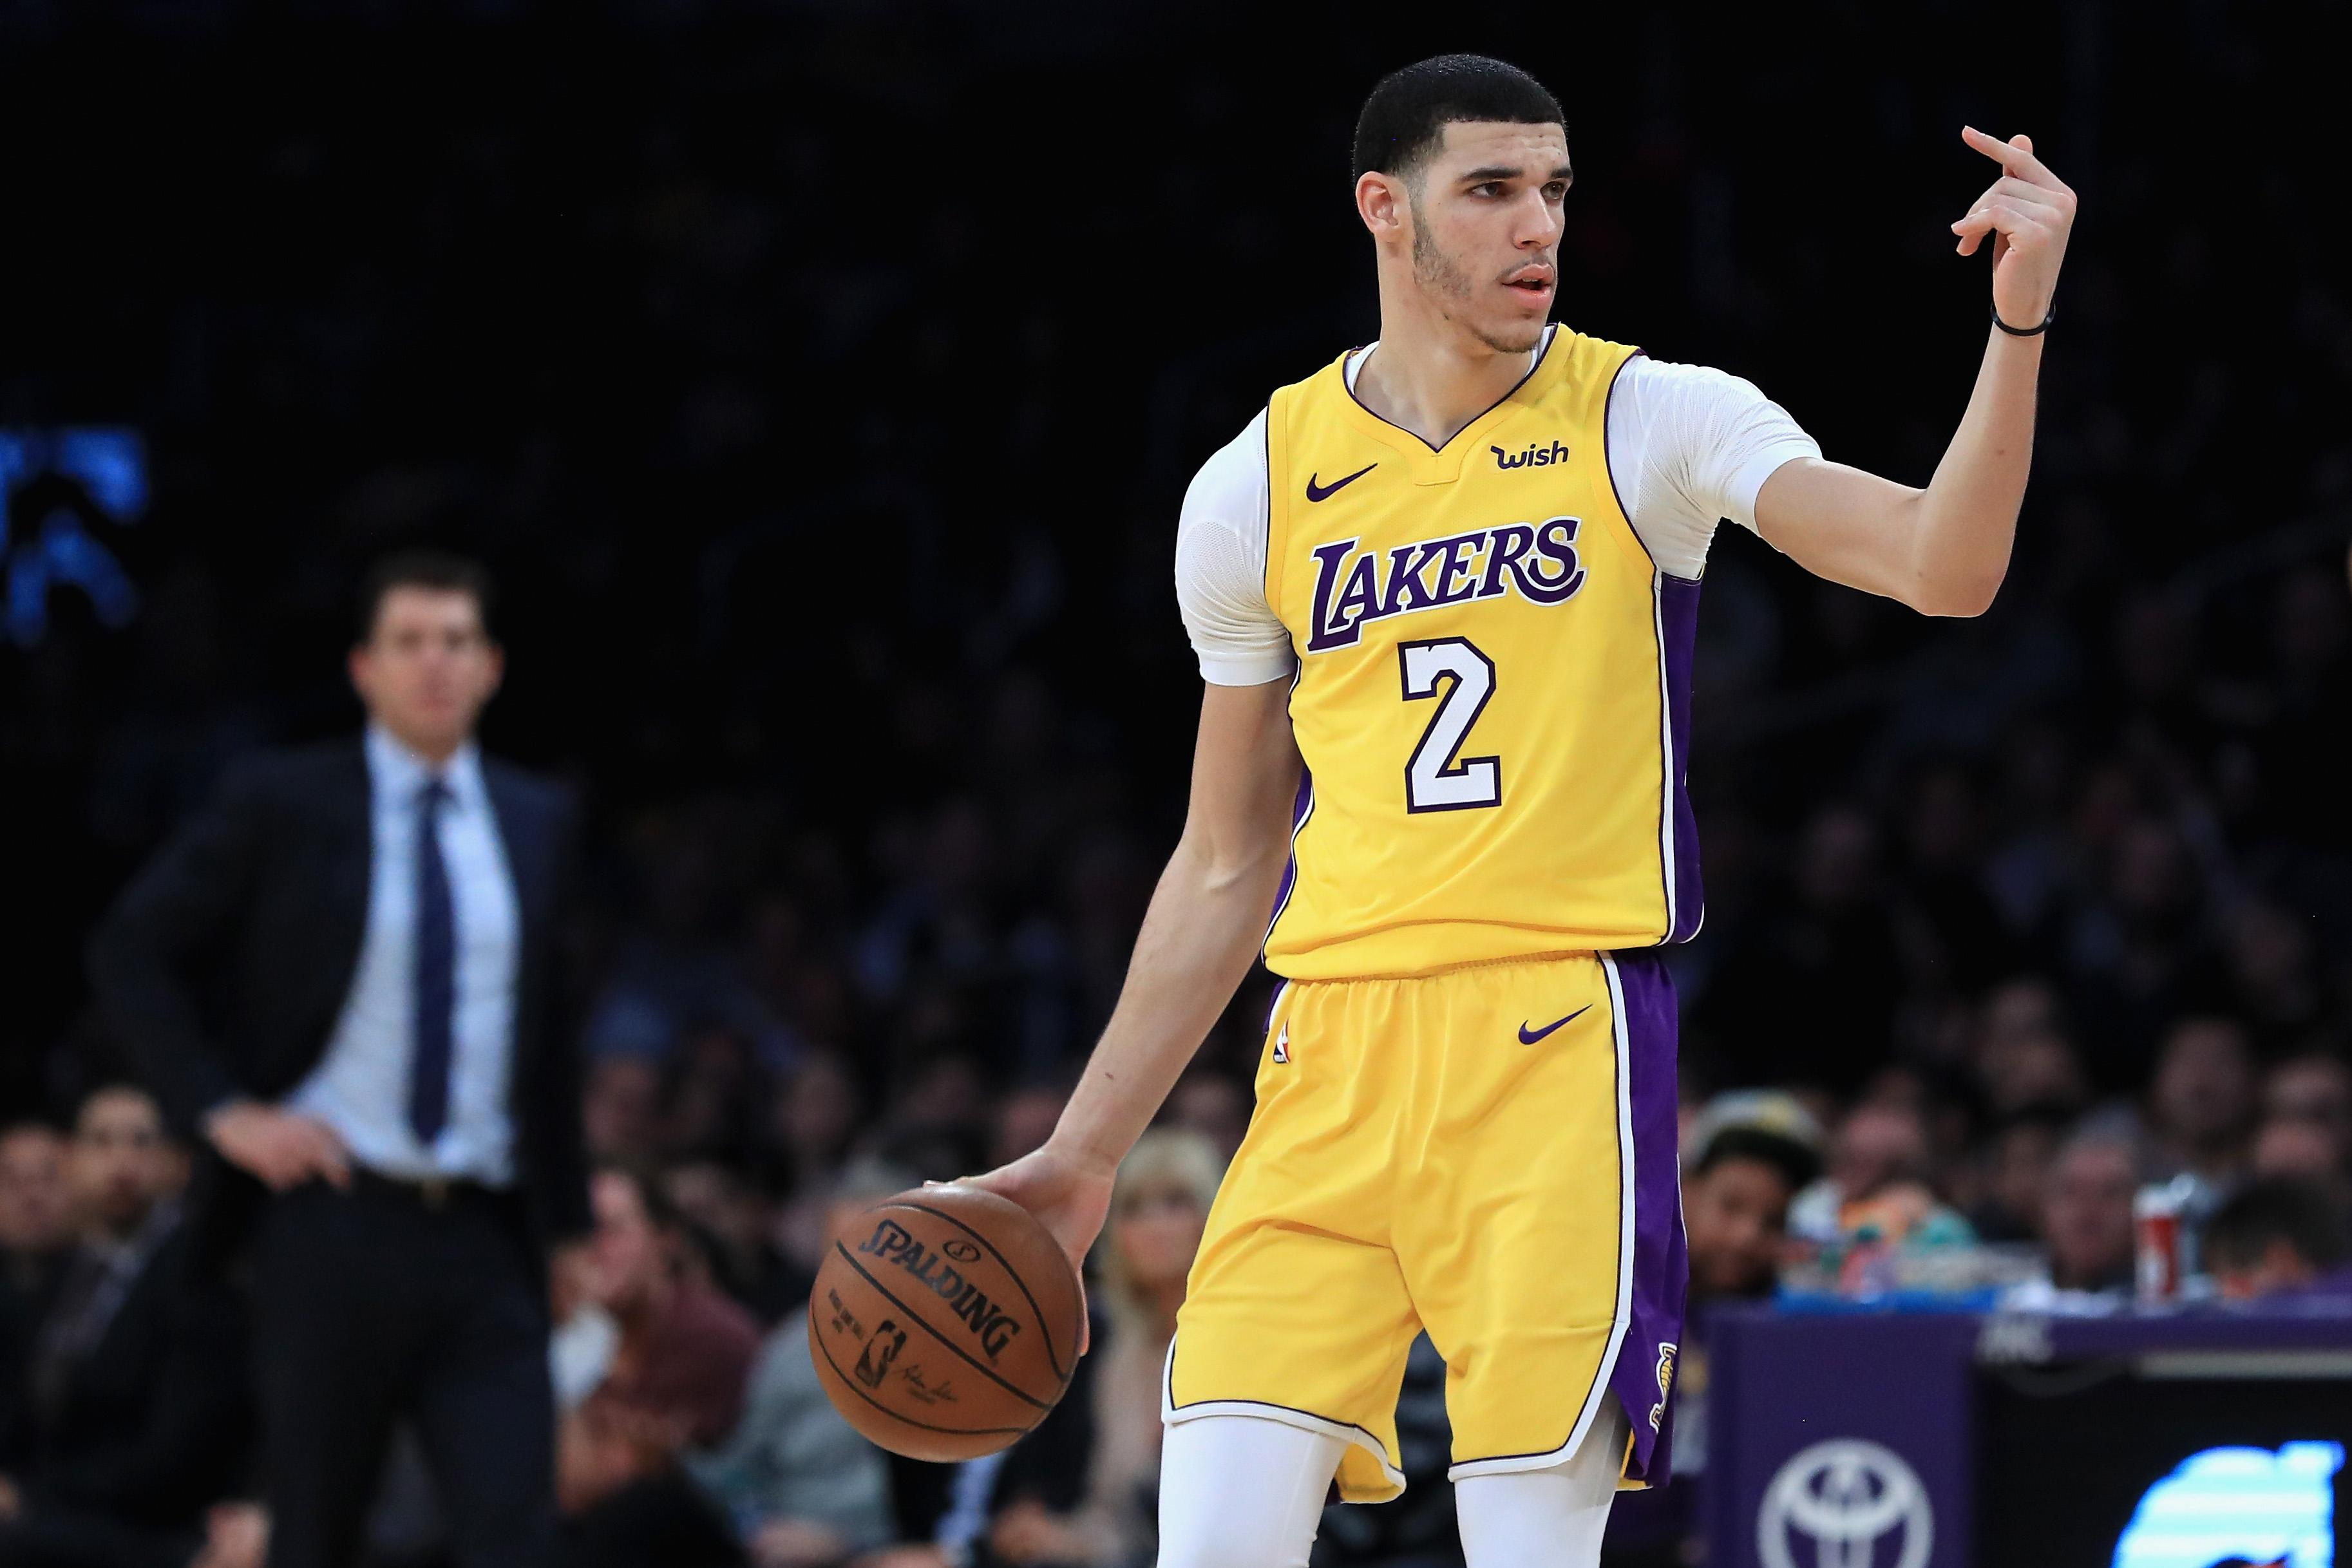 LaVar Ball: If the Lakers trade Lonzo, it will be the 'worst move they ever made'